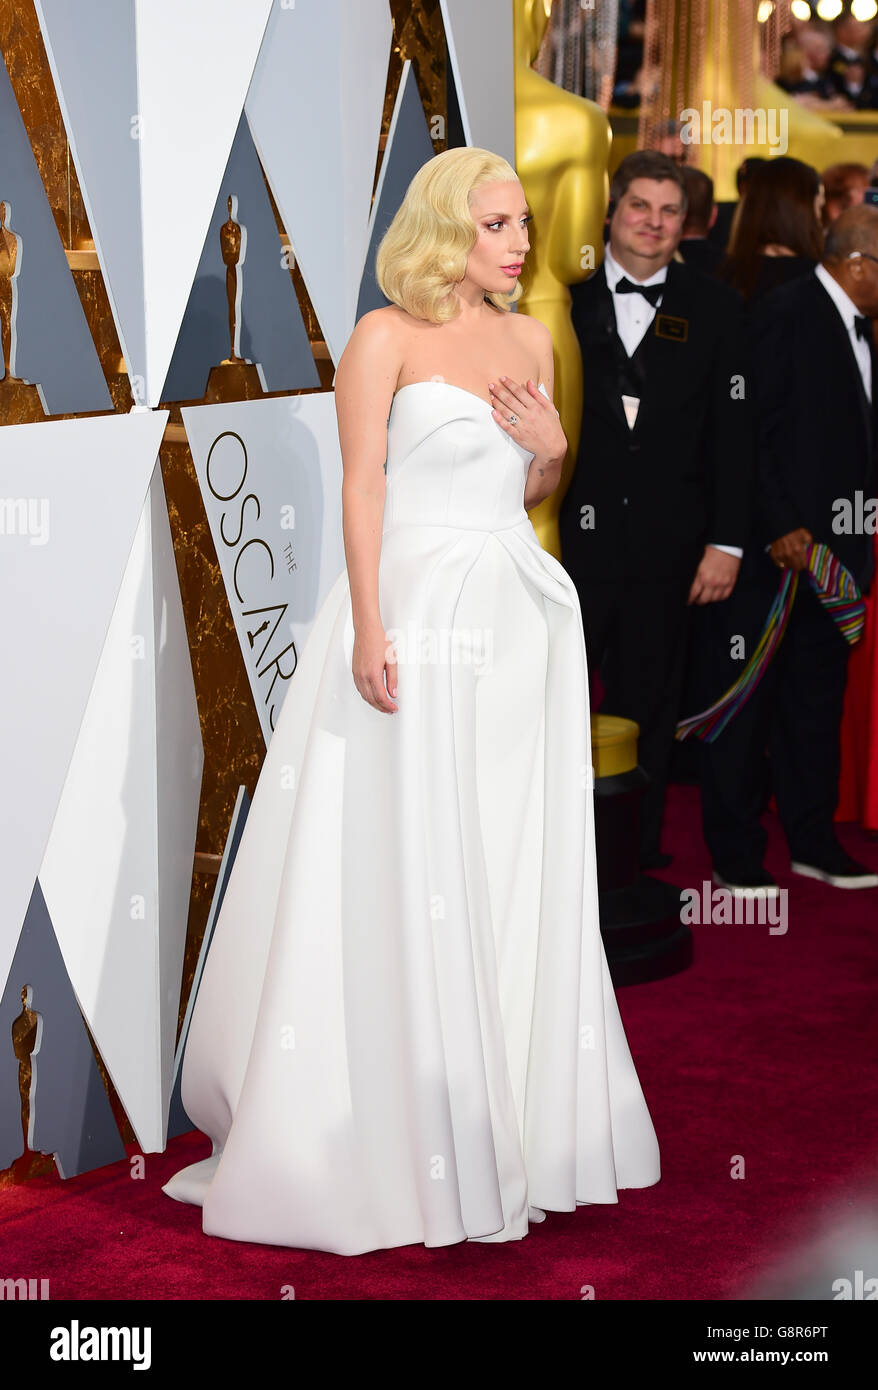 The 88th Academy Awards - Arrivals - Los Angeles Stock Photo